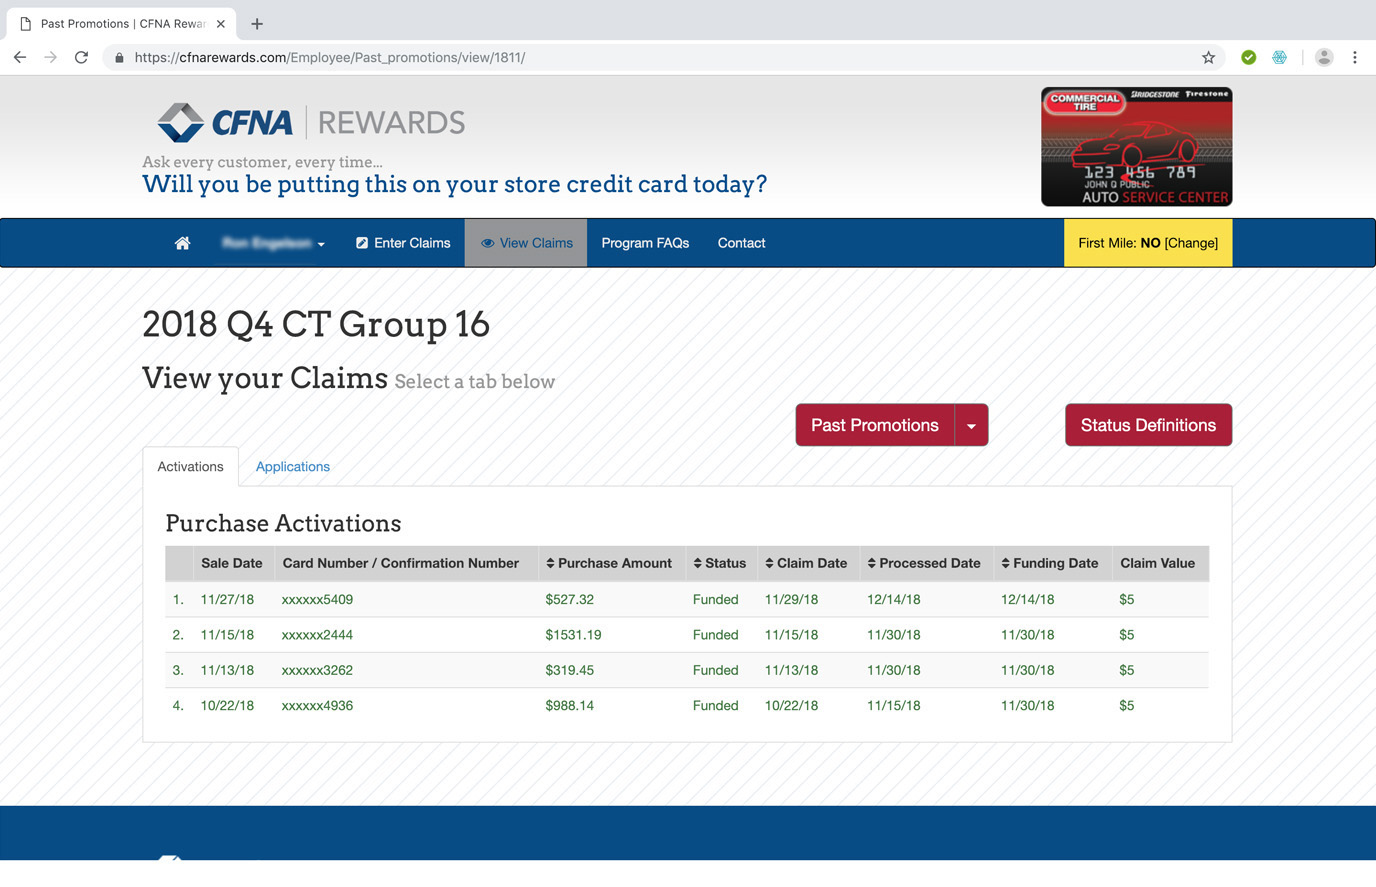 CFNA Rewards View Claims